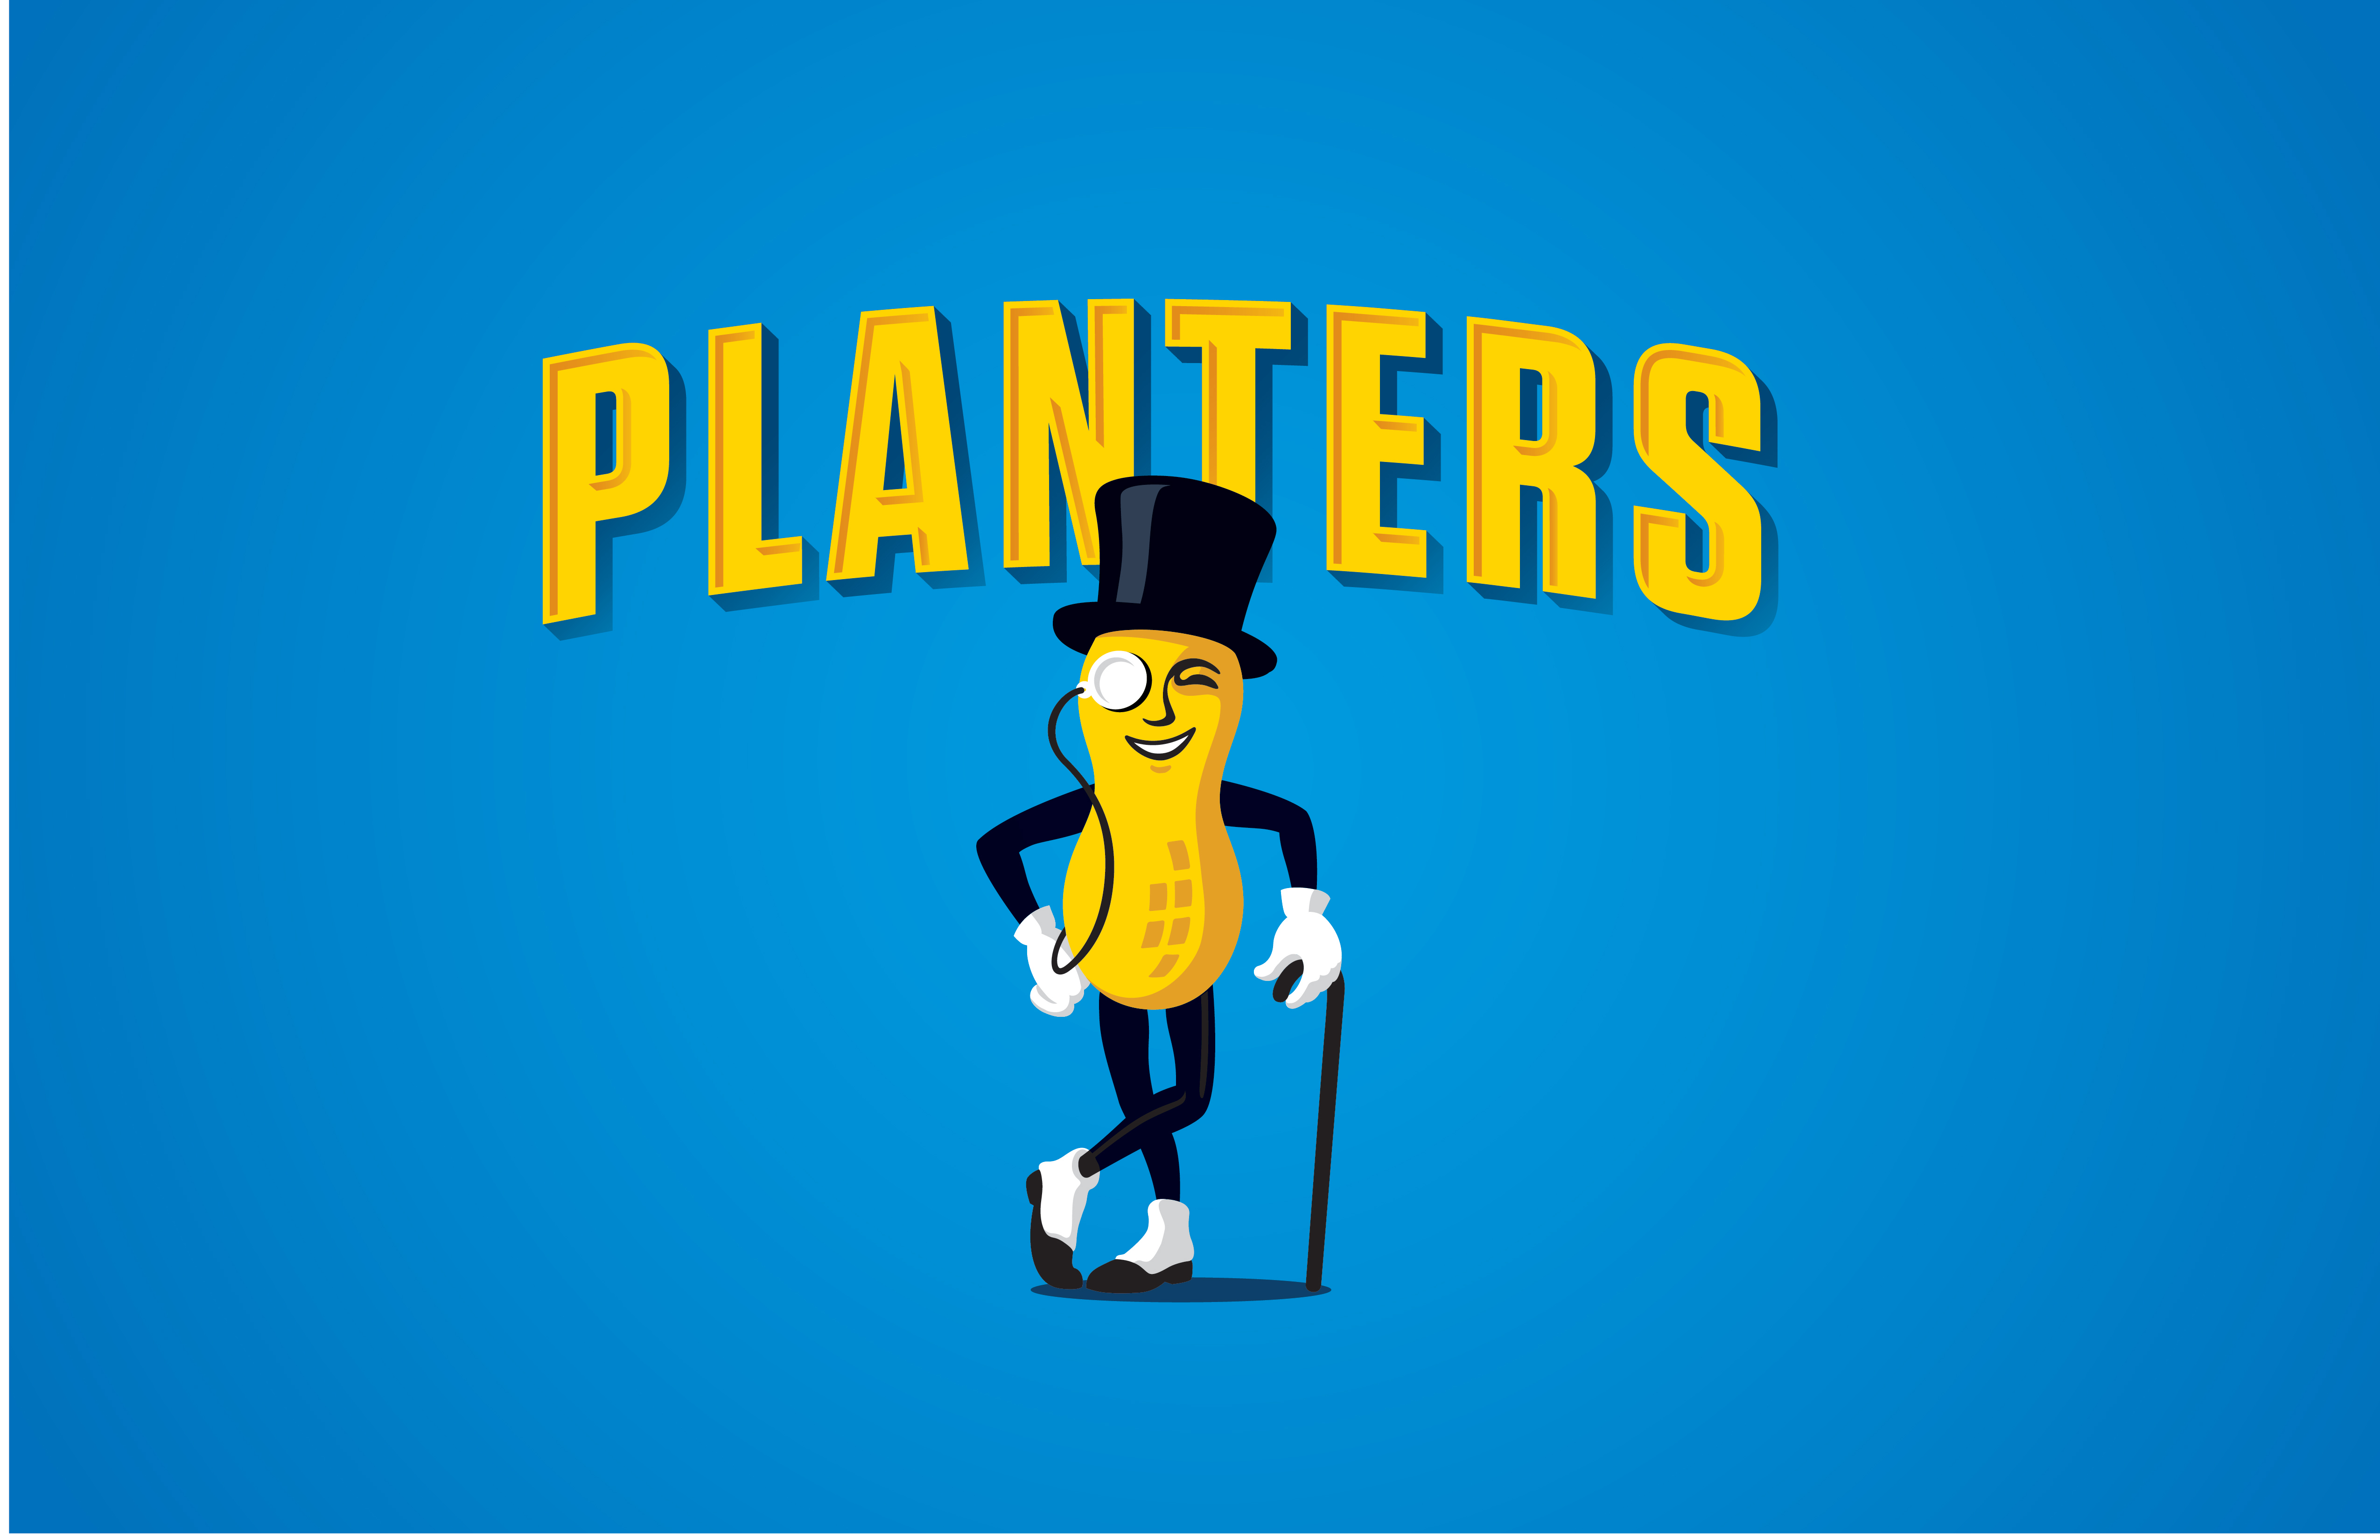 mixed pack ounce regular planters nuts planter product of jar